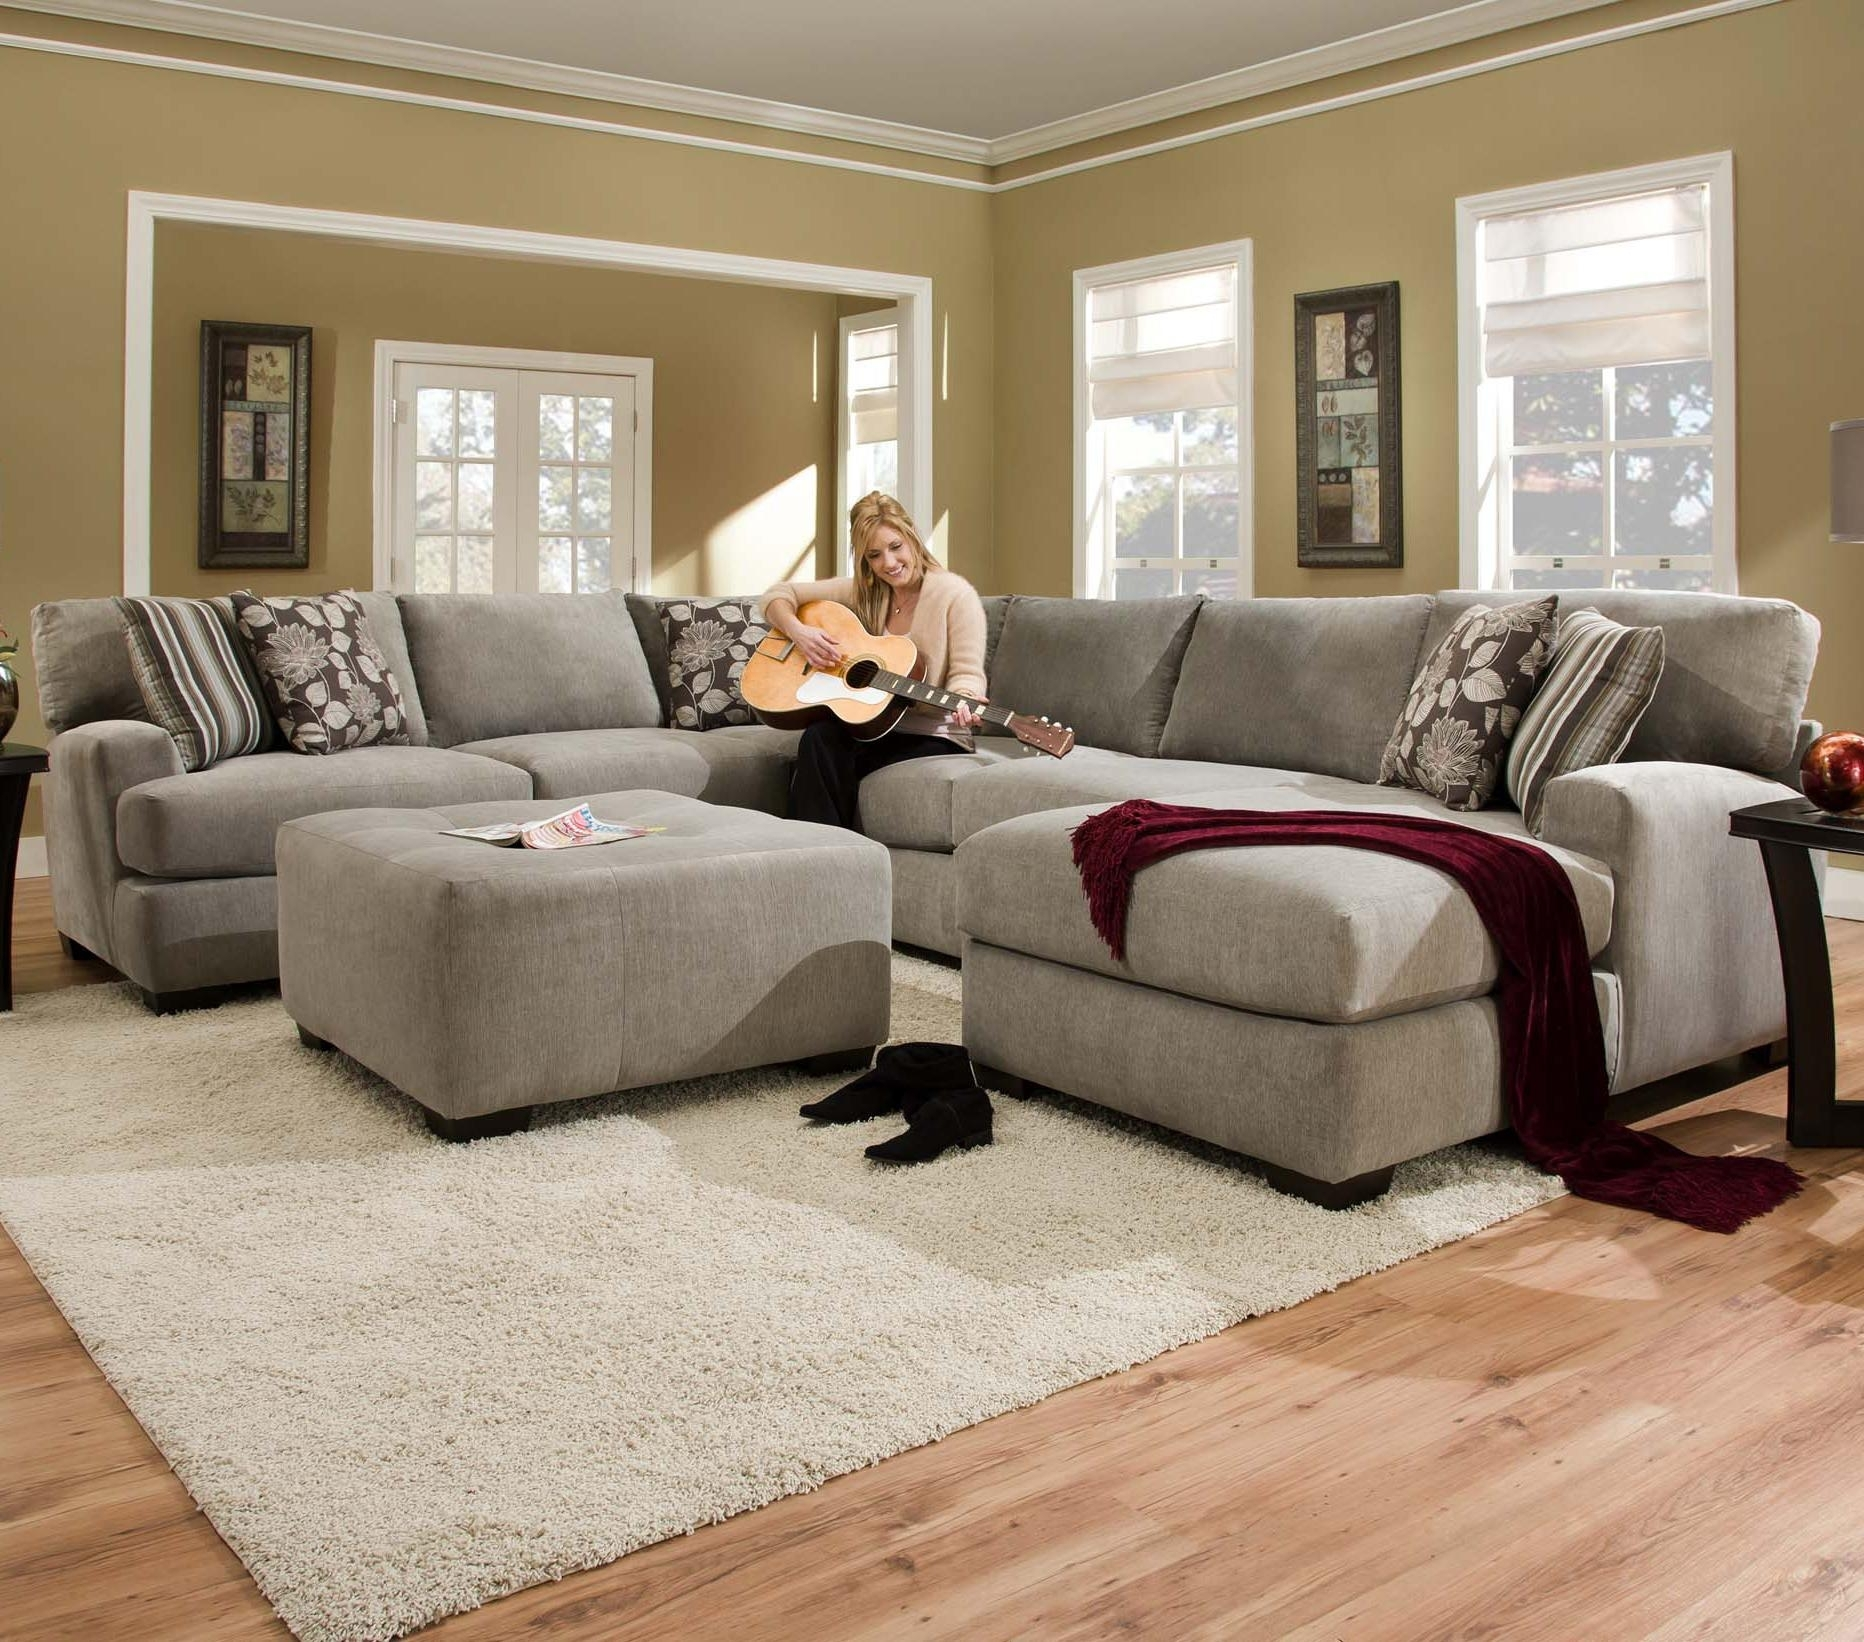 Corinthian 29A0 Ottoman For Use With Chair | Standard Furniture Pertaining To Josephine 2 Piece Sectionals With Raf Sofa (View 6 of 25)